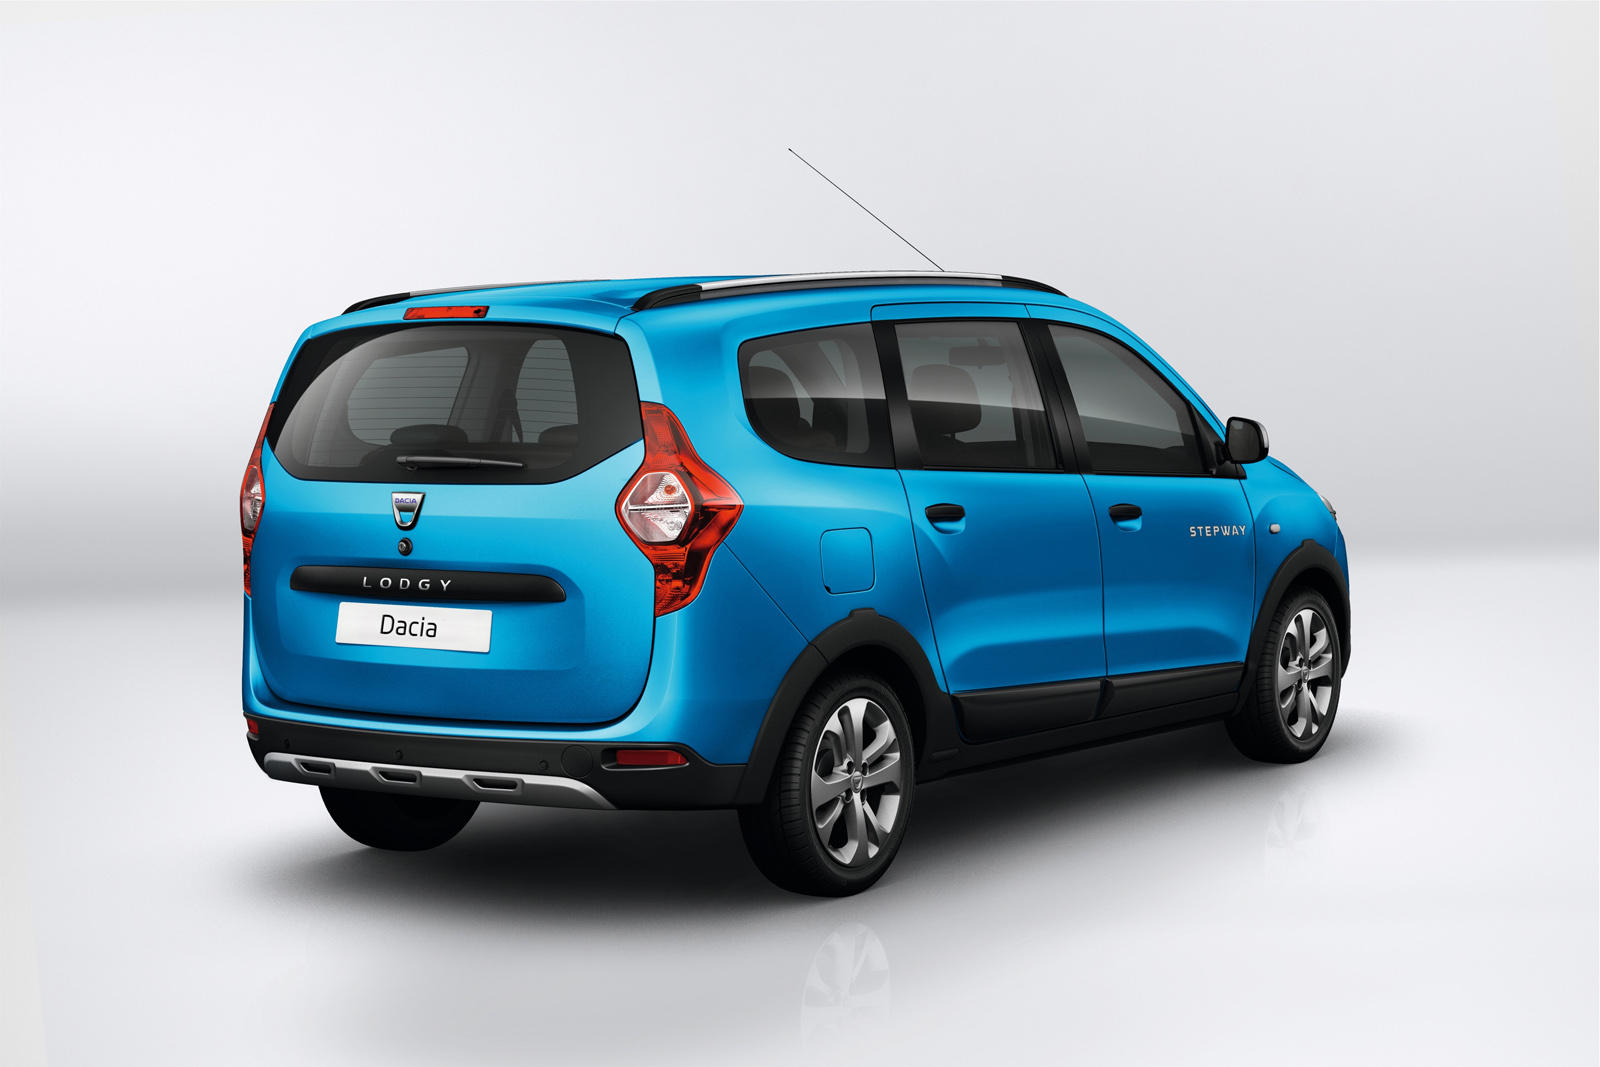 Pictures of dacia lodgy #2